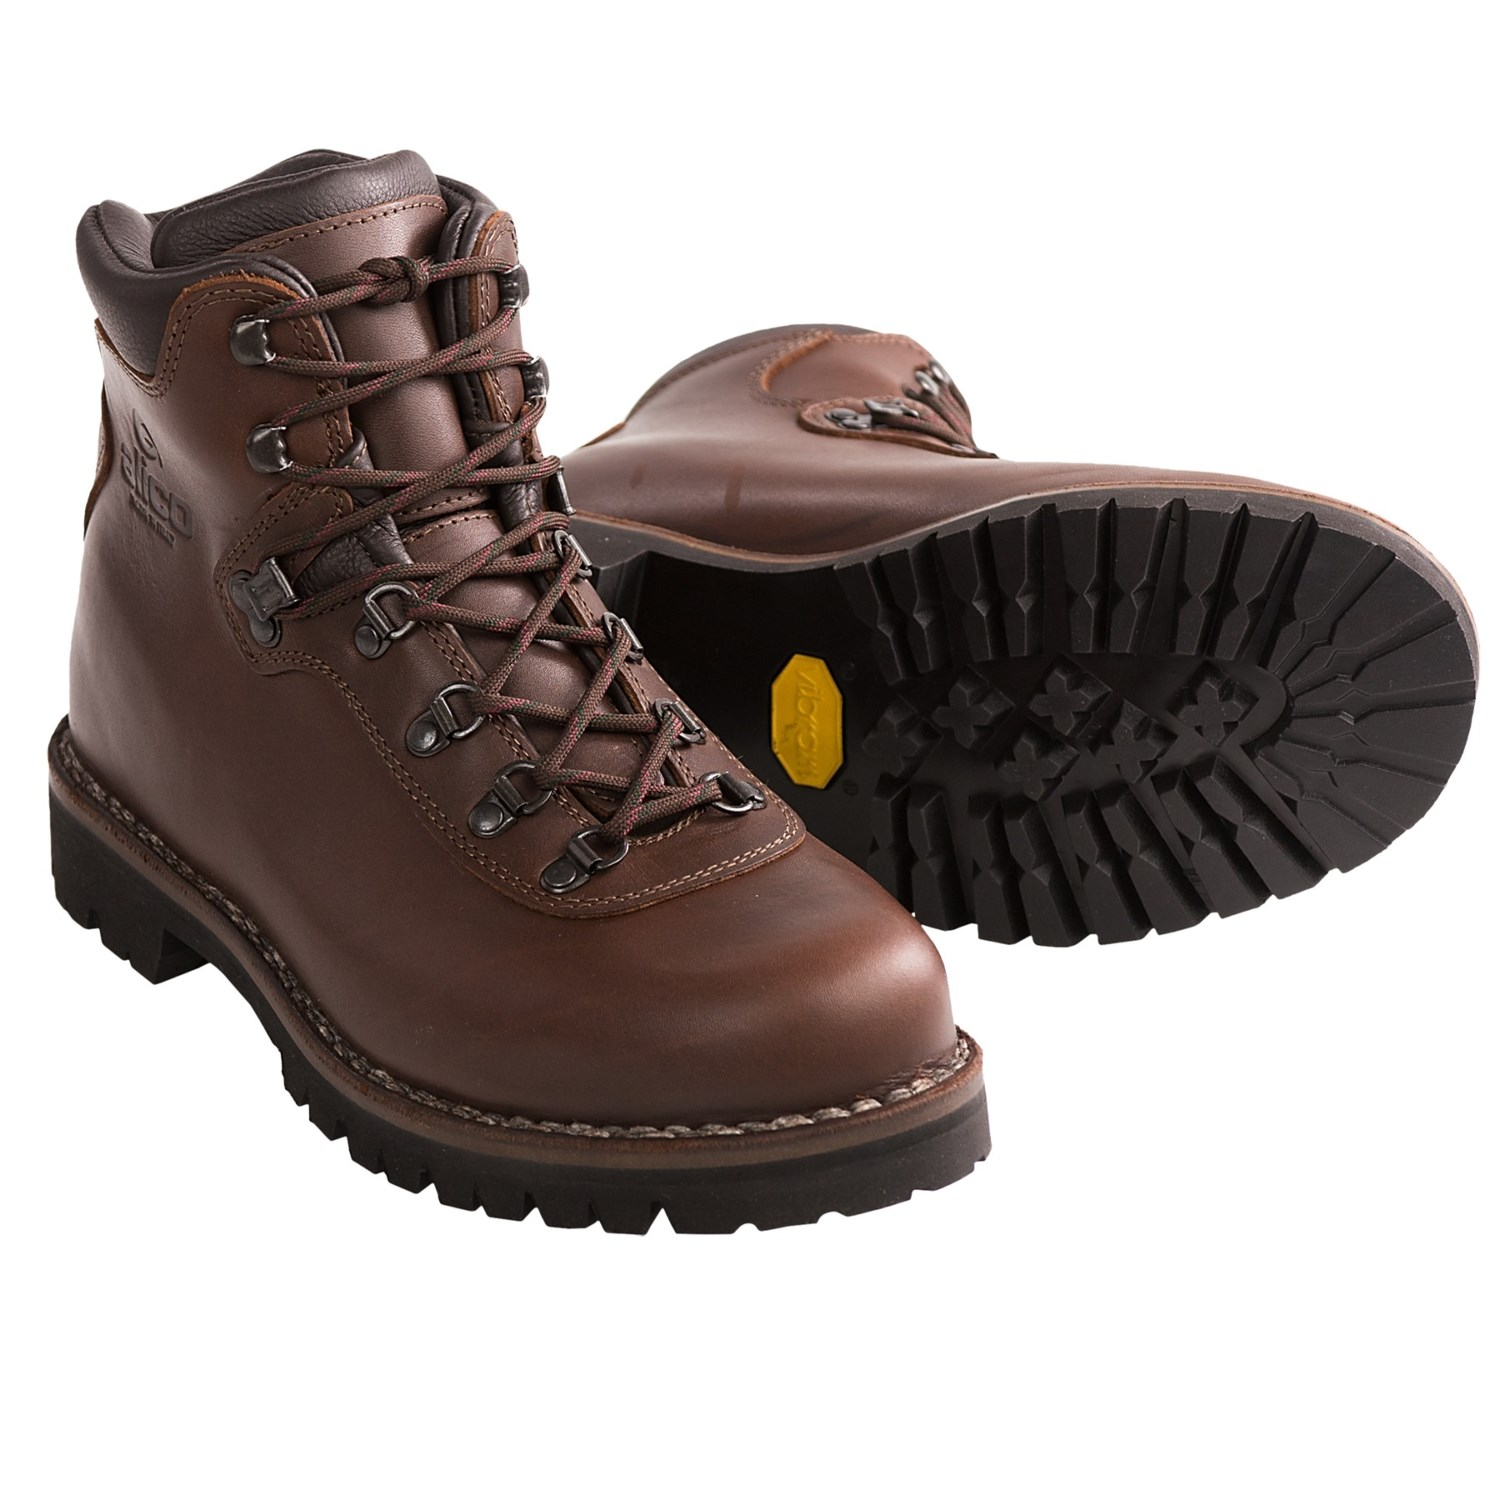 Image result for hiking boots for men